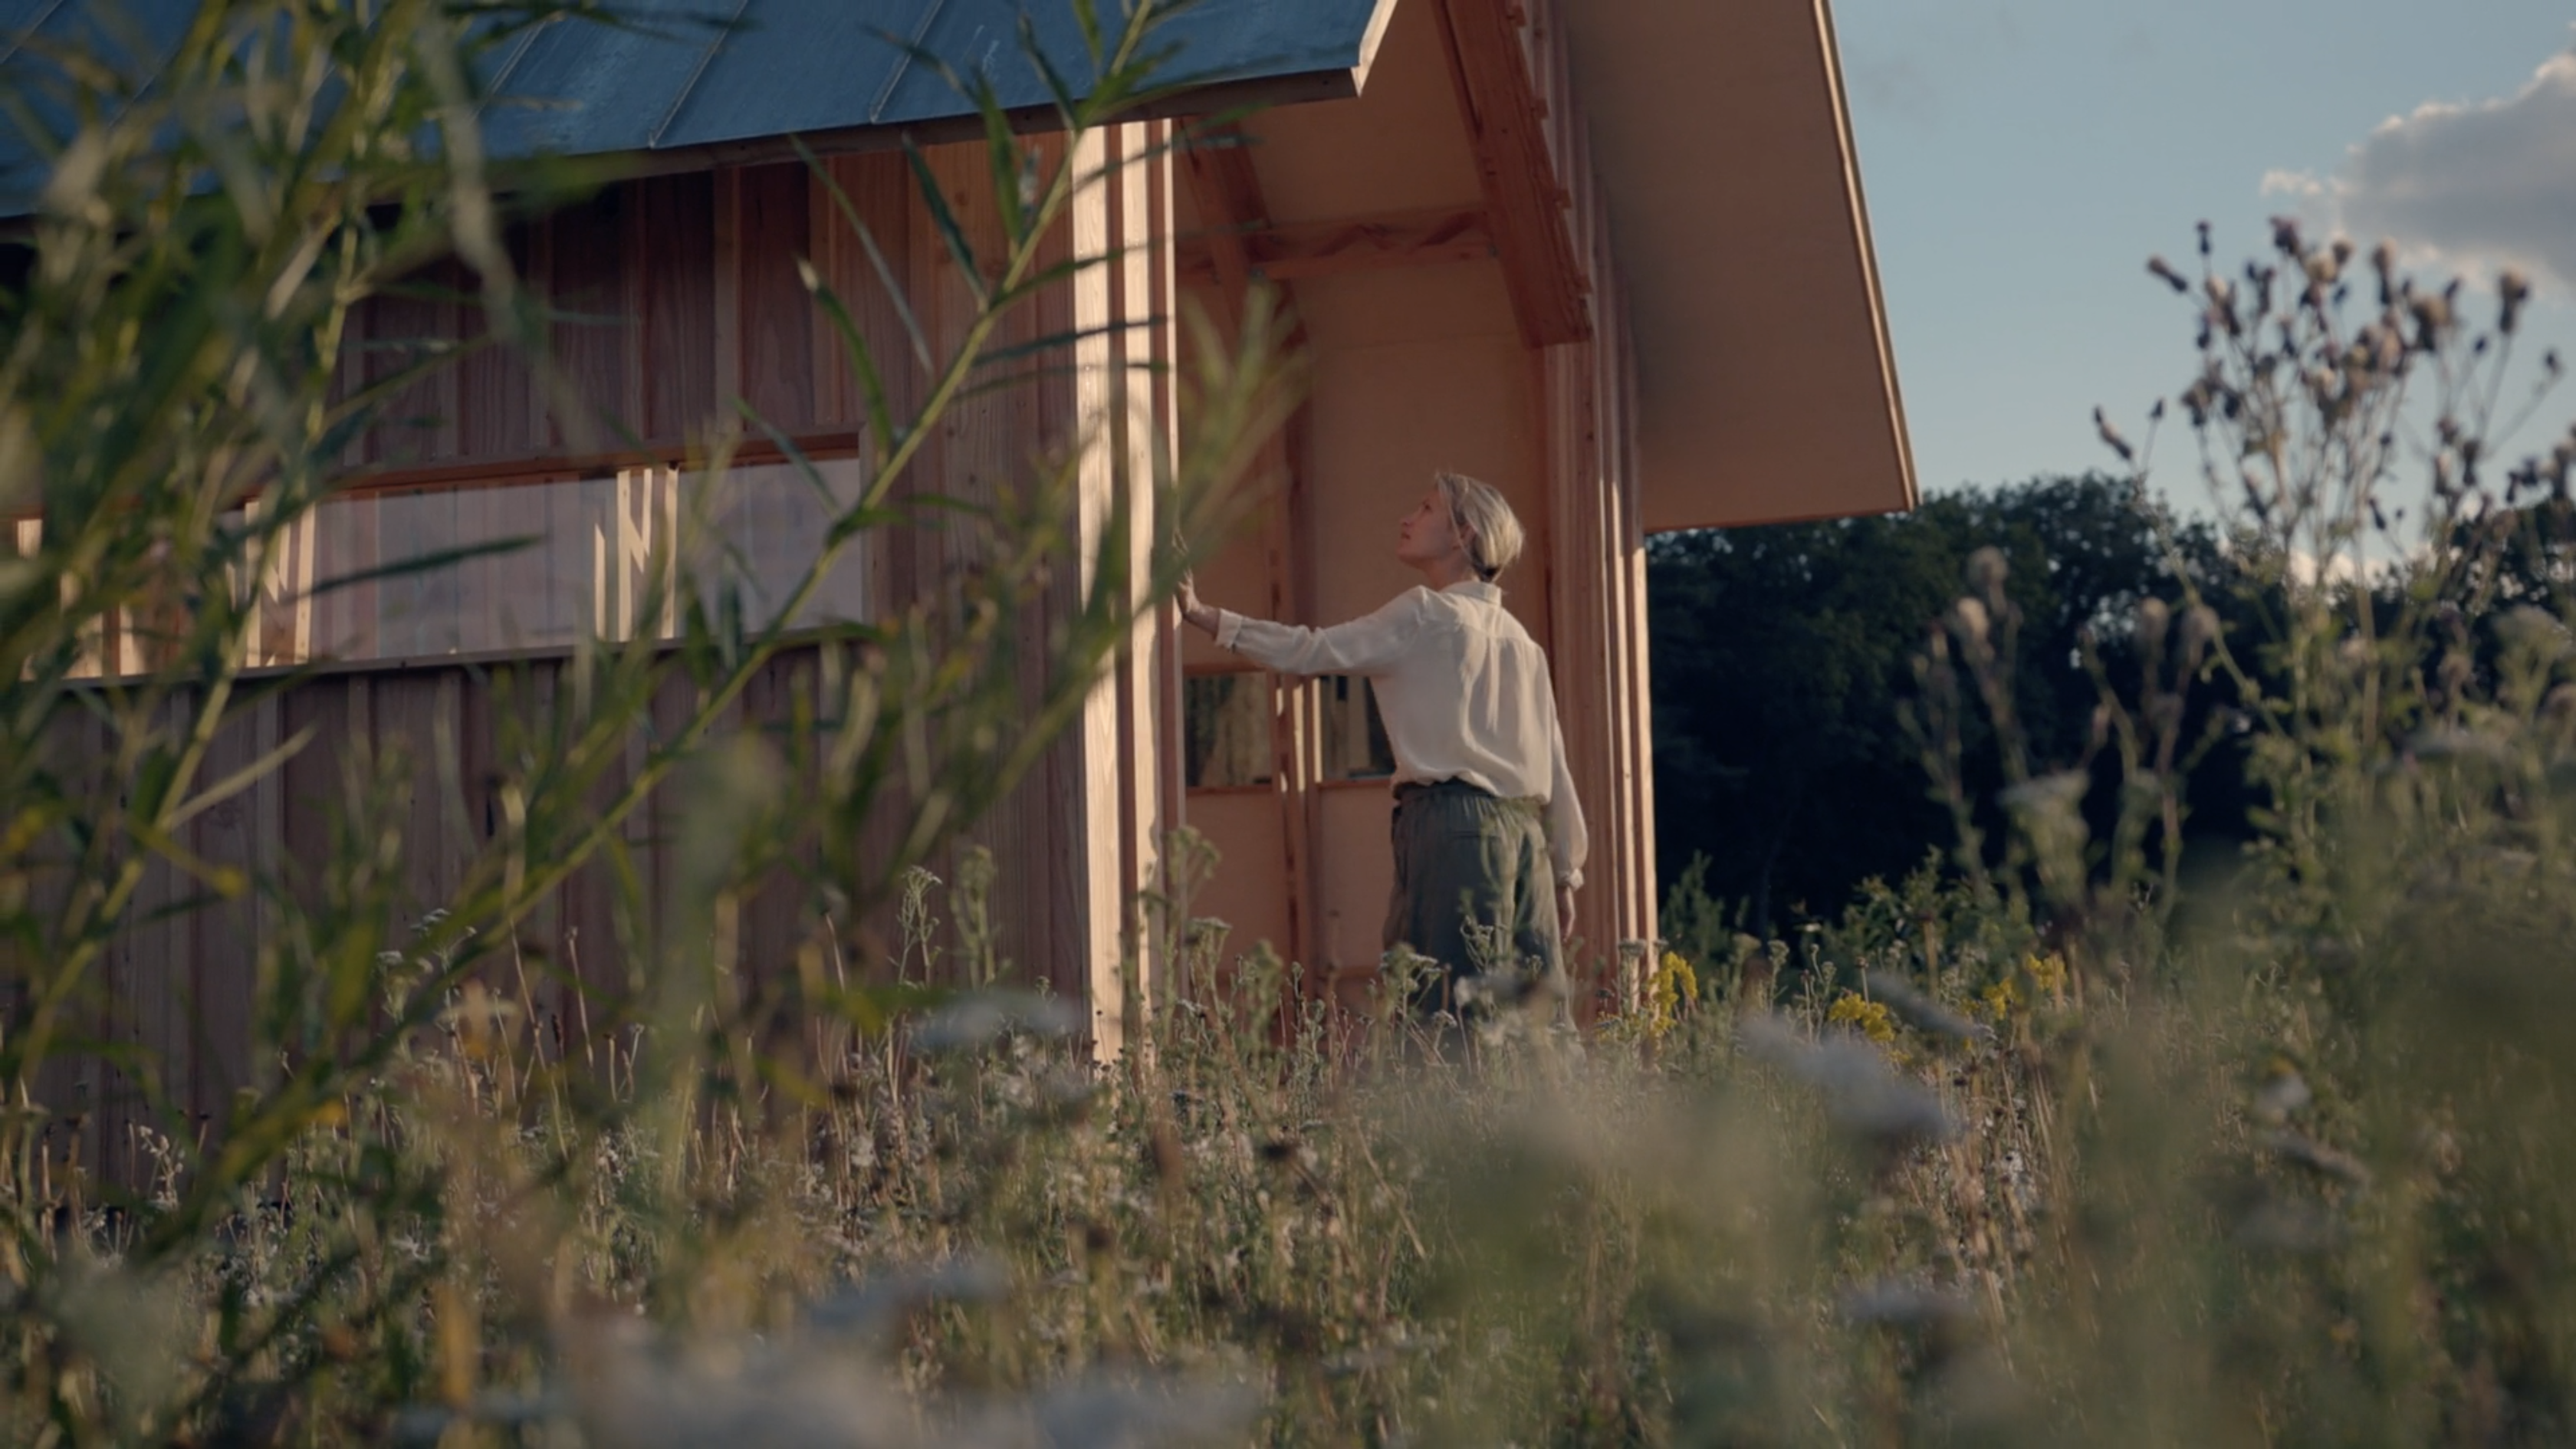 Still from Cabin ANNA MEET. It's a medium shot of the girl arriving at ANNA MEET. She's touching the wall with one hand. It is sunny, almost sunset.